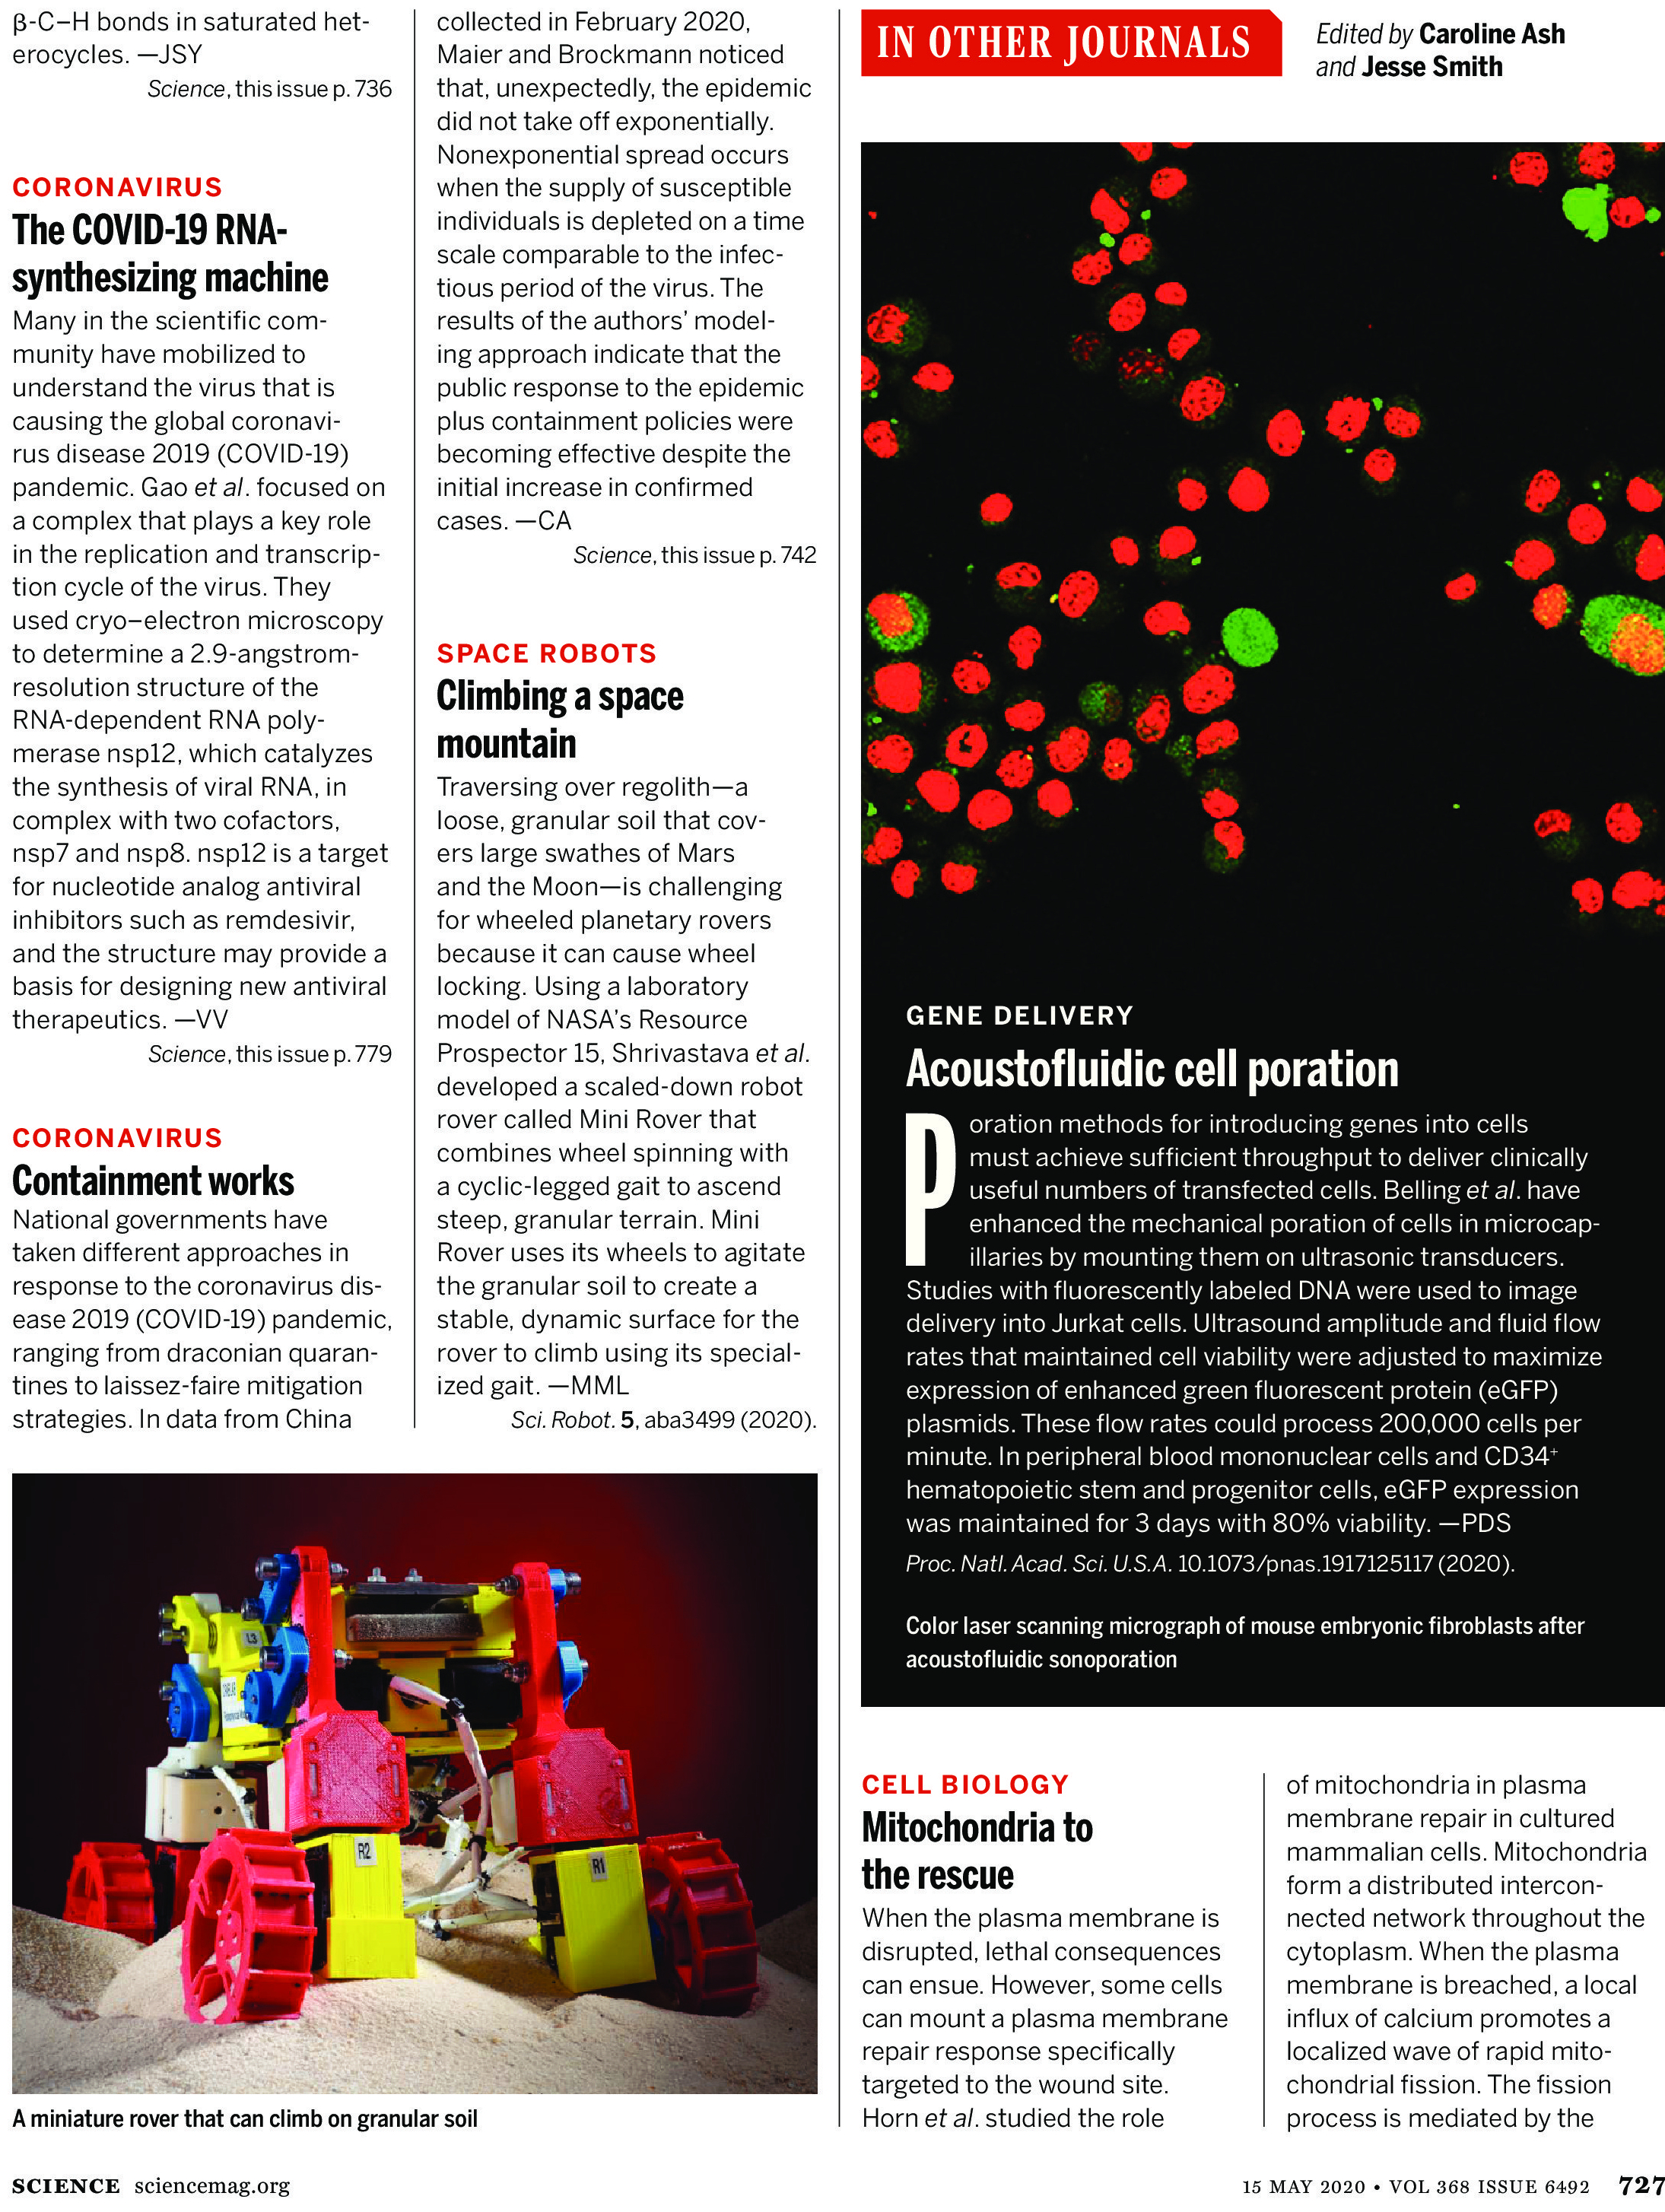 Science Magazine May 15 Research Highlights